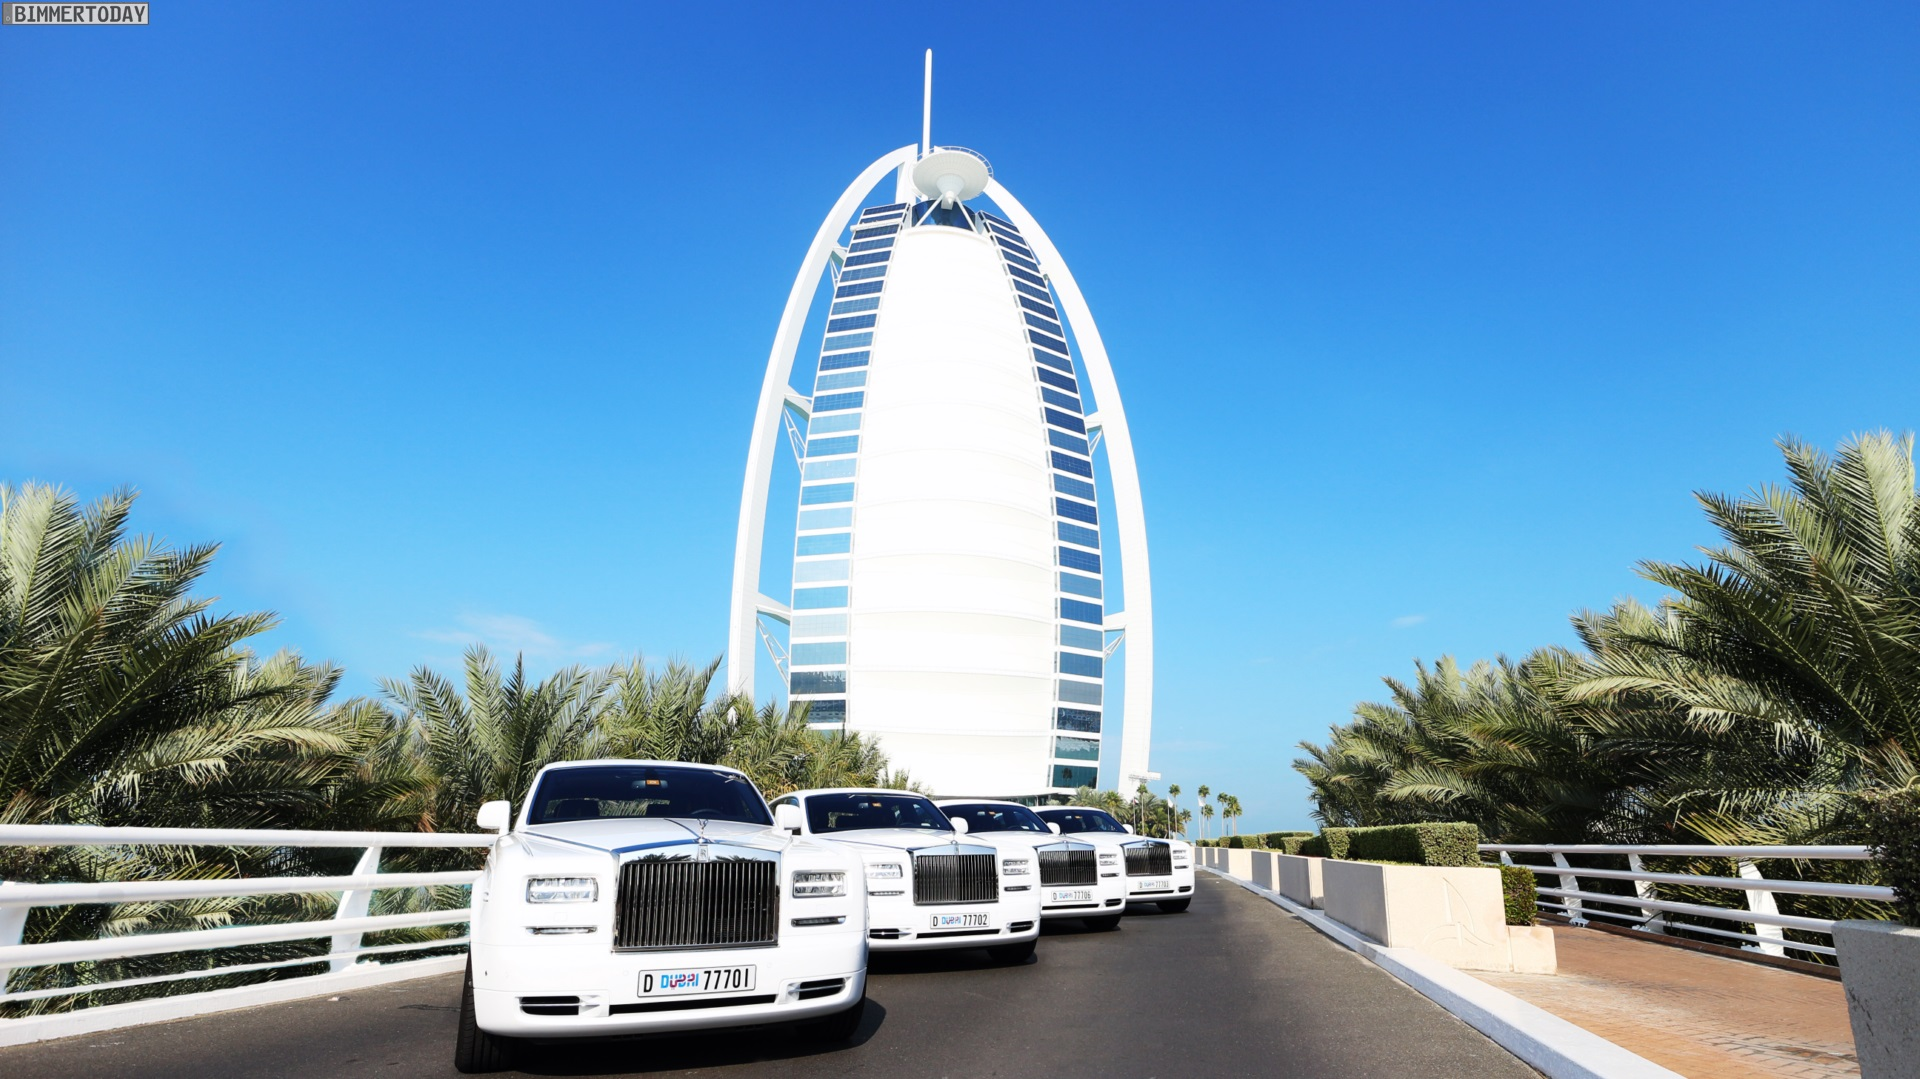 Dubai S Burj Al Arab Hotel Has Added Four More Rolls Royces To Its Fleet